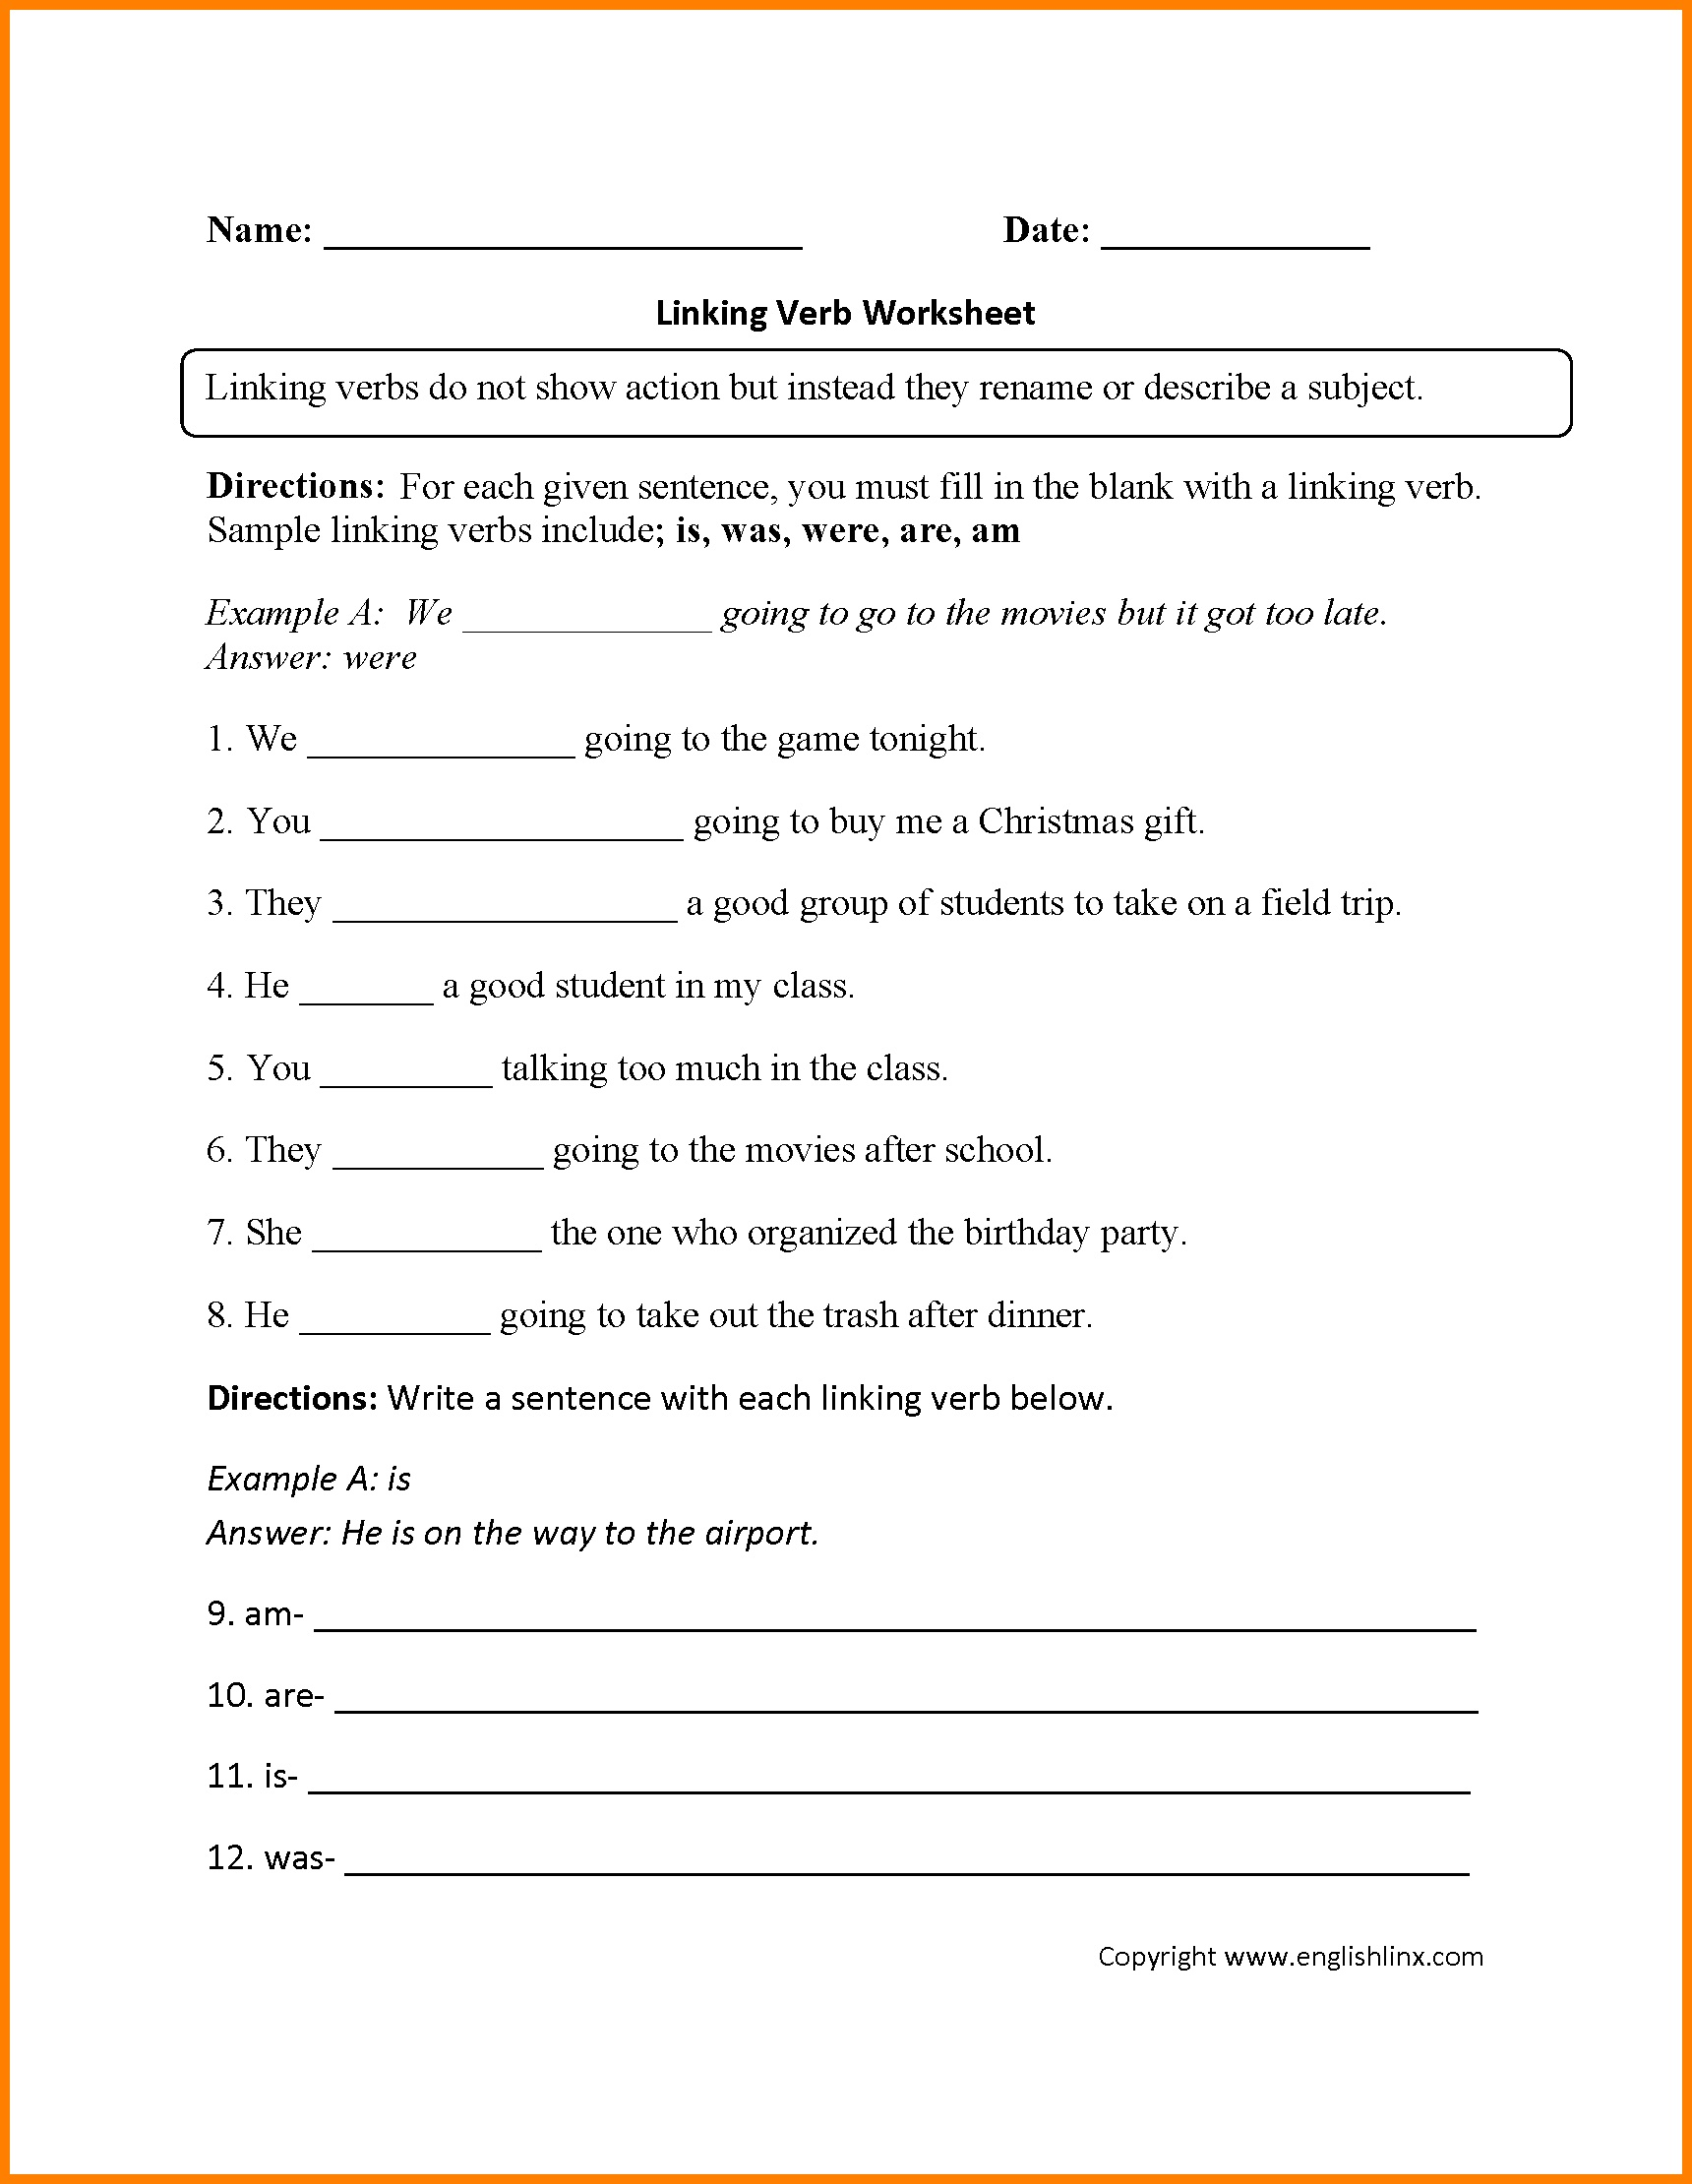 Free Printable Linking Verbs Worksheets